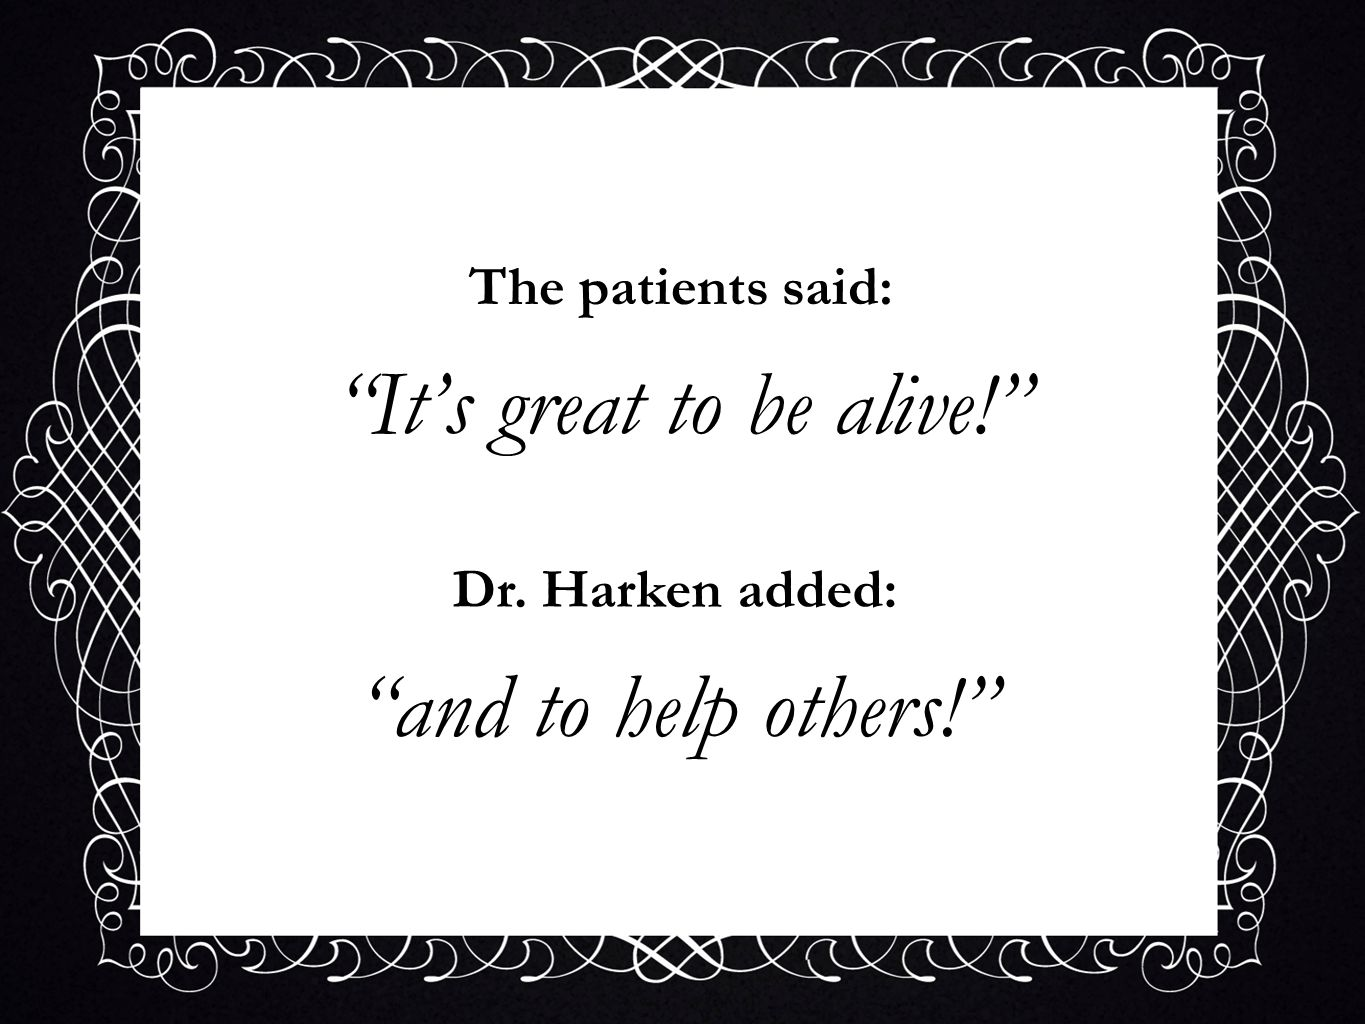 The patients said: Its great to be alive! Dr. Harken added: and to help others!